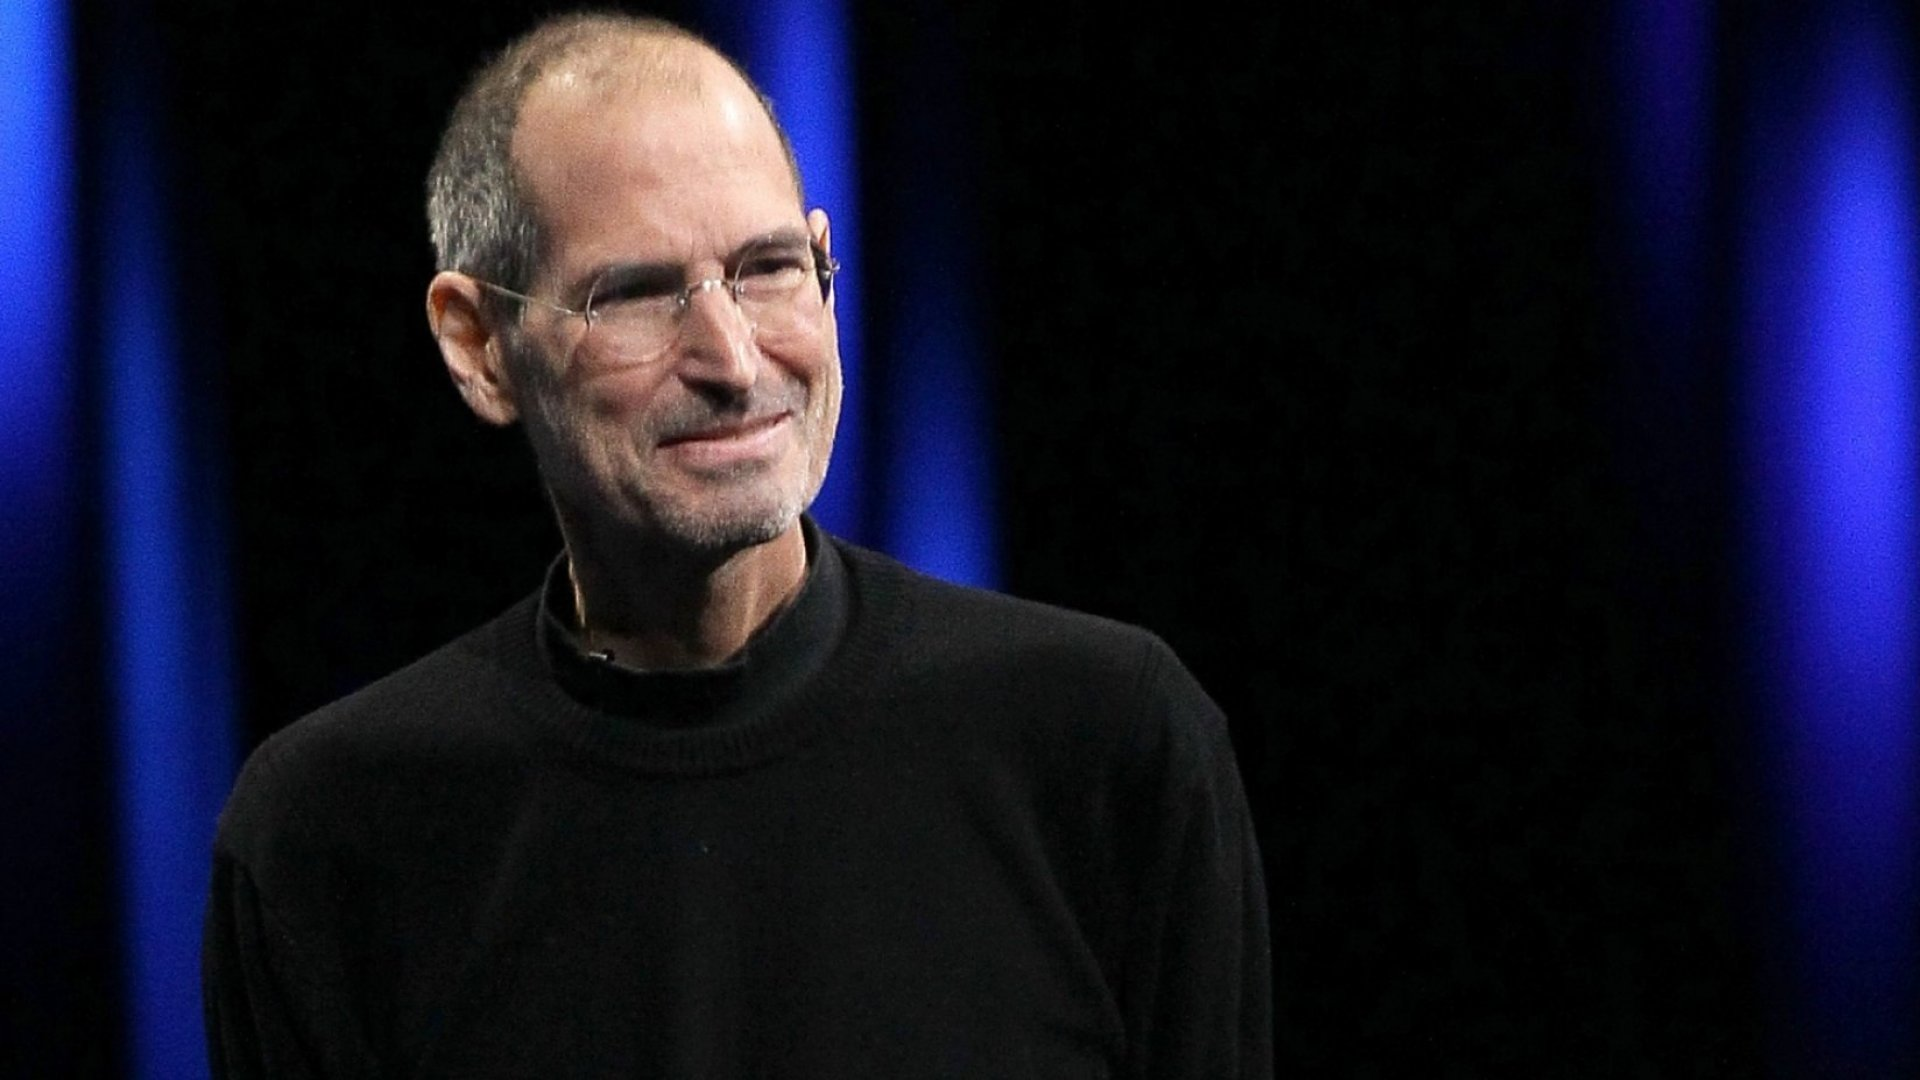 8 Steve Jobs Quotes to Fuel Your Entrepreneurial Spirit